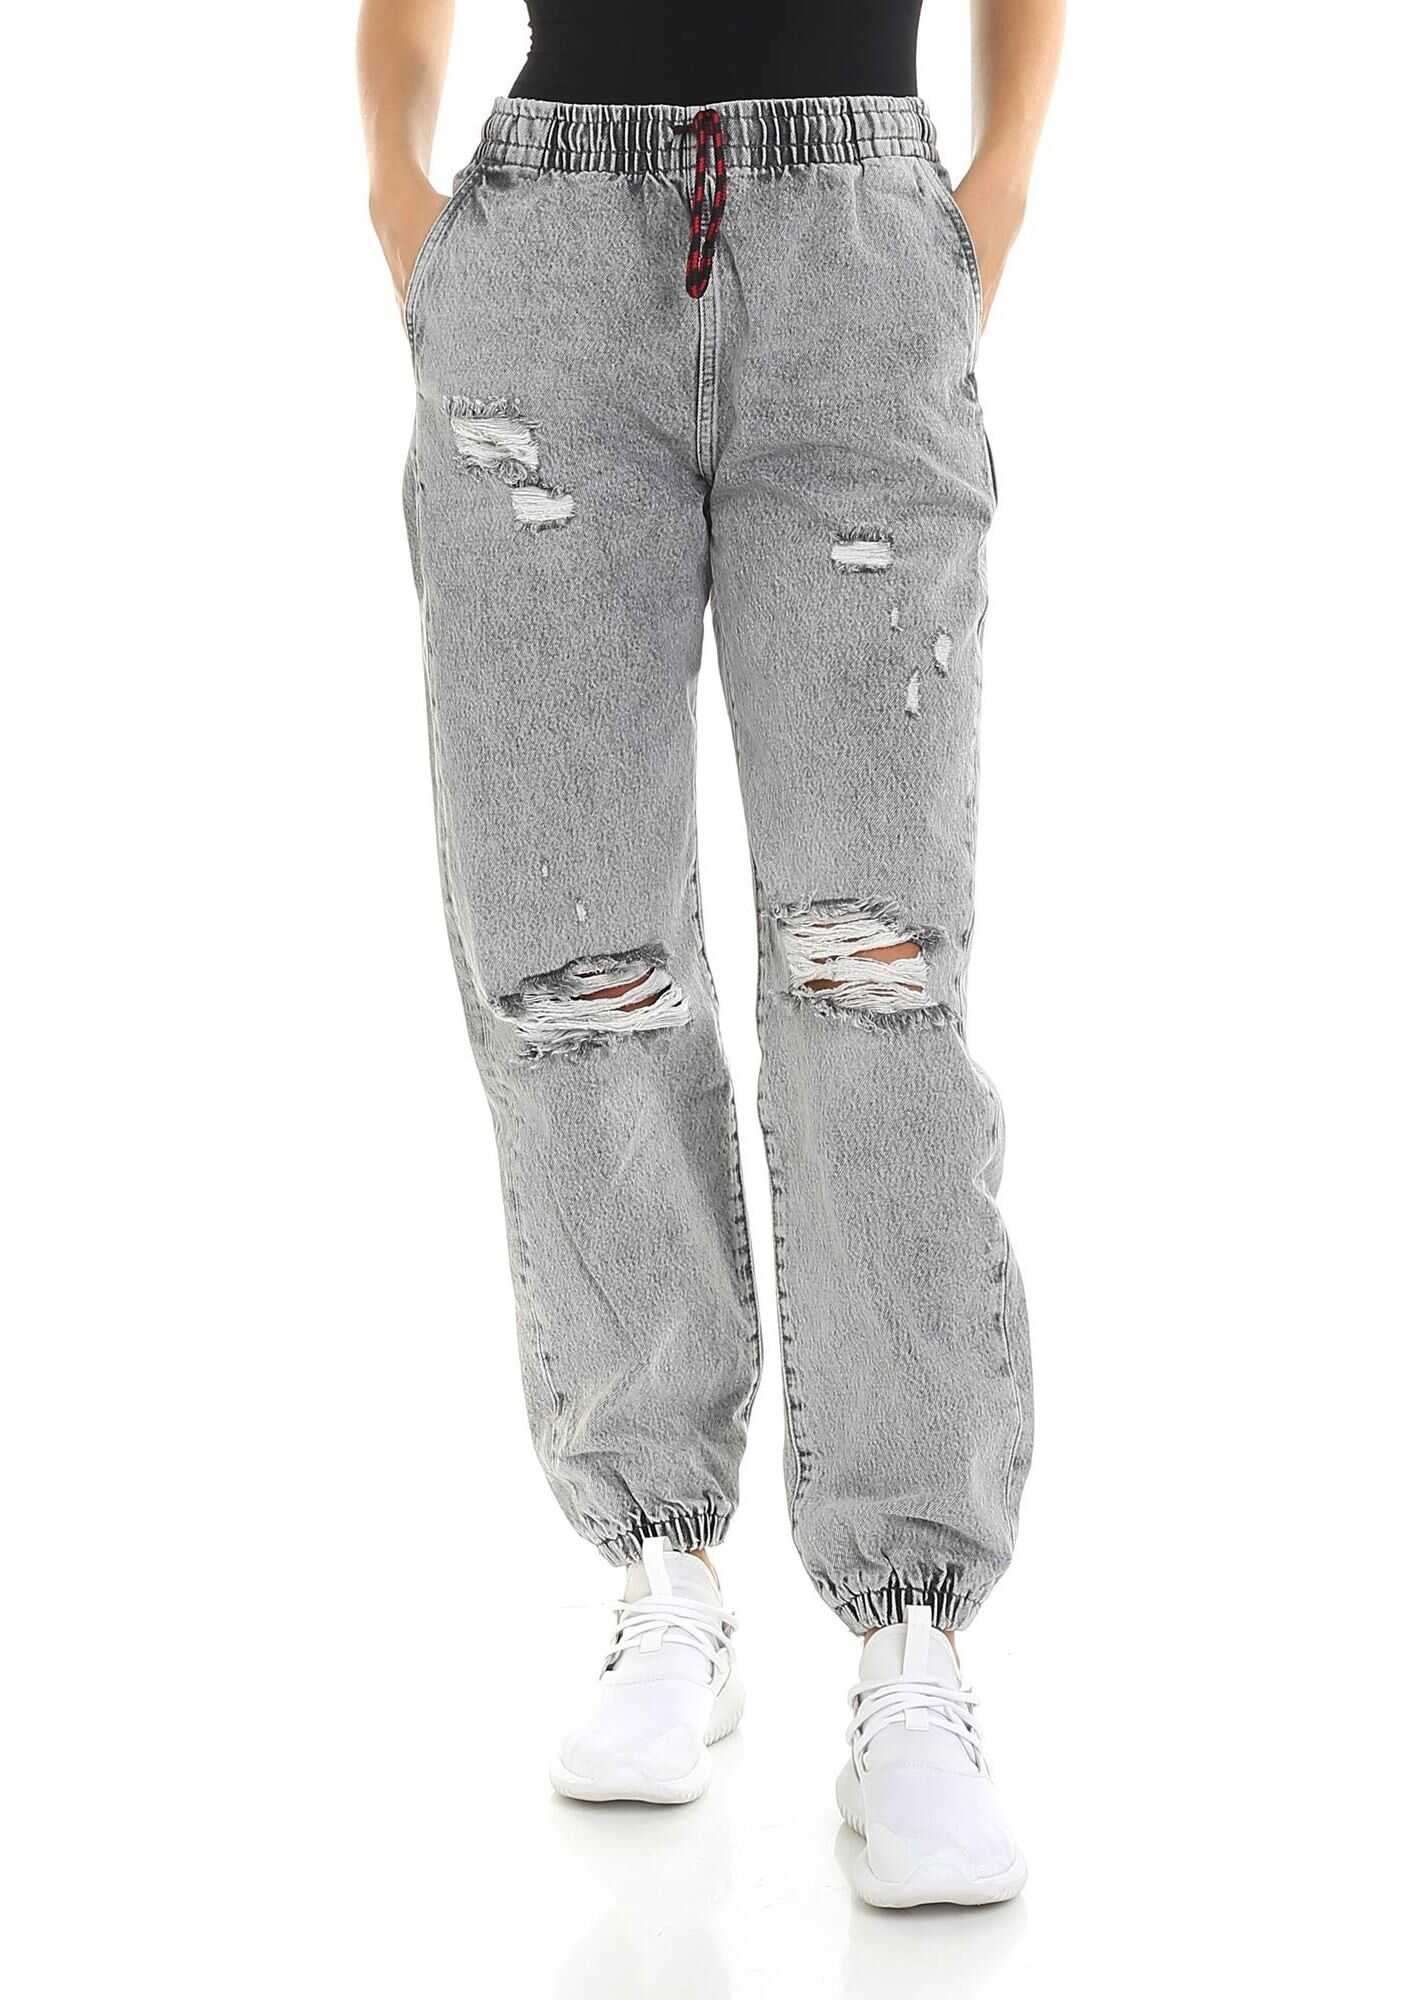 Alexander Wang Grey Jeans With Elastic Edges Gray